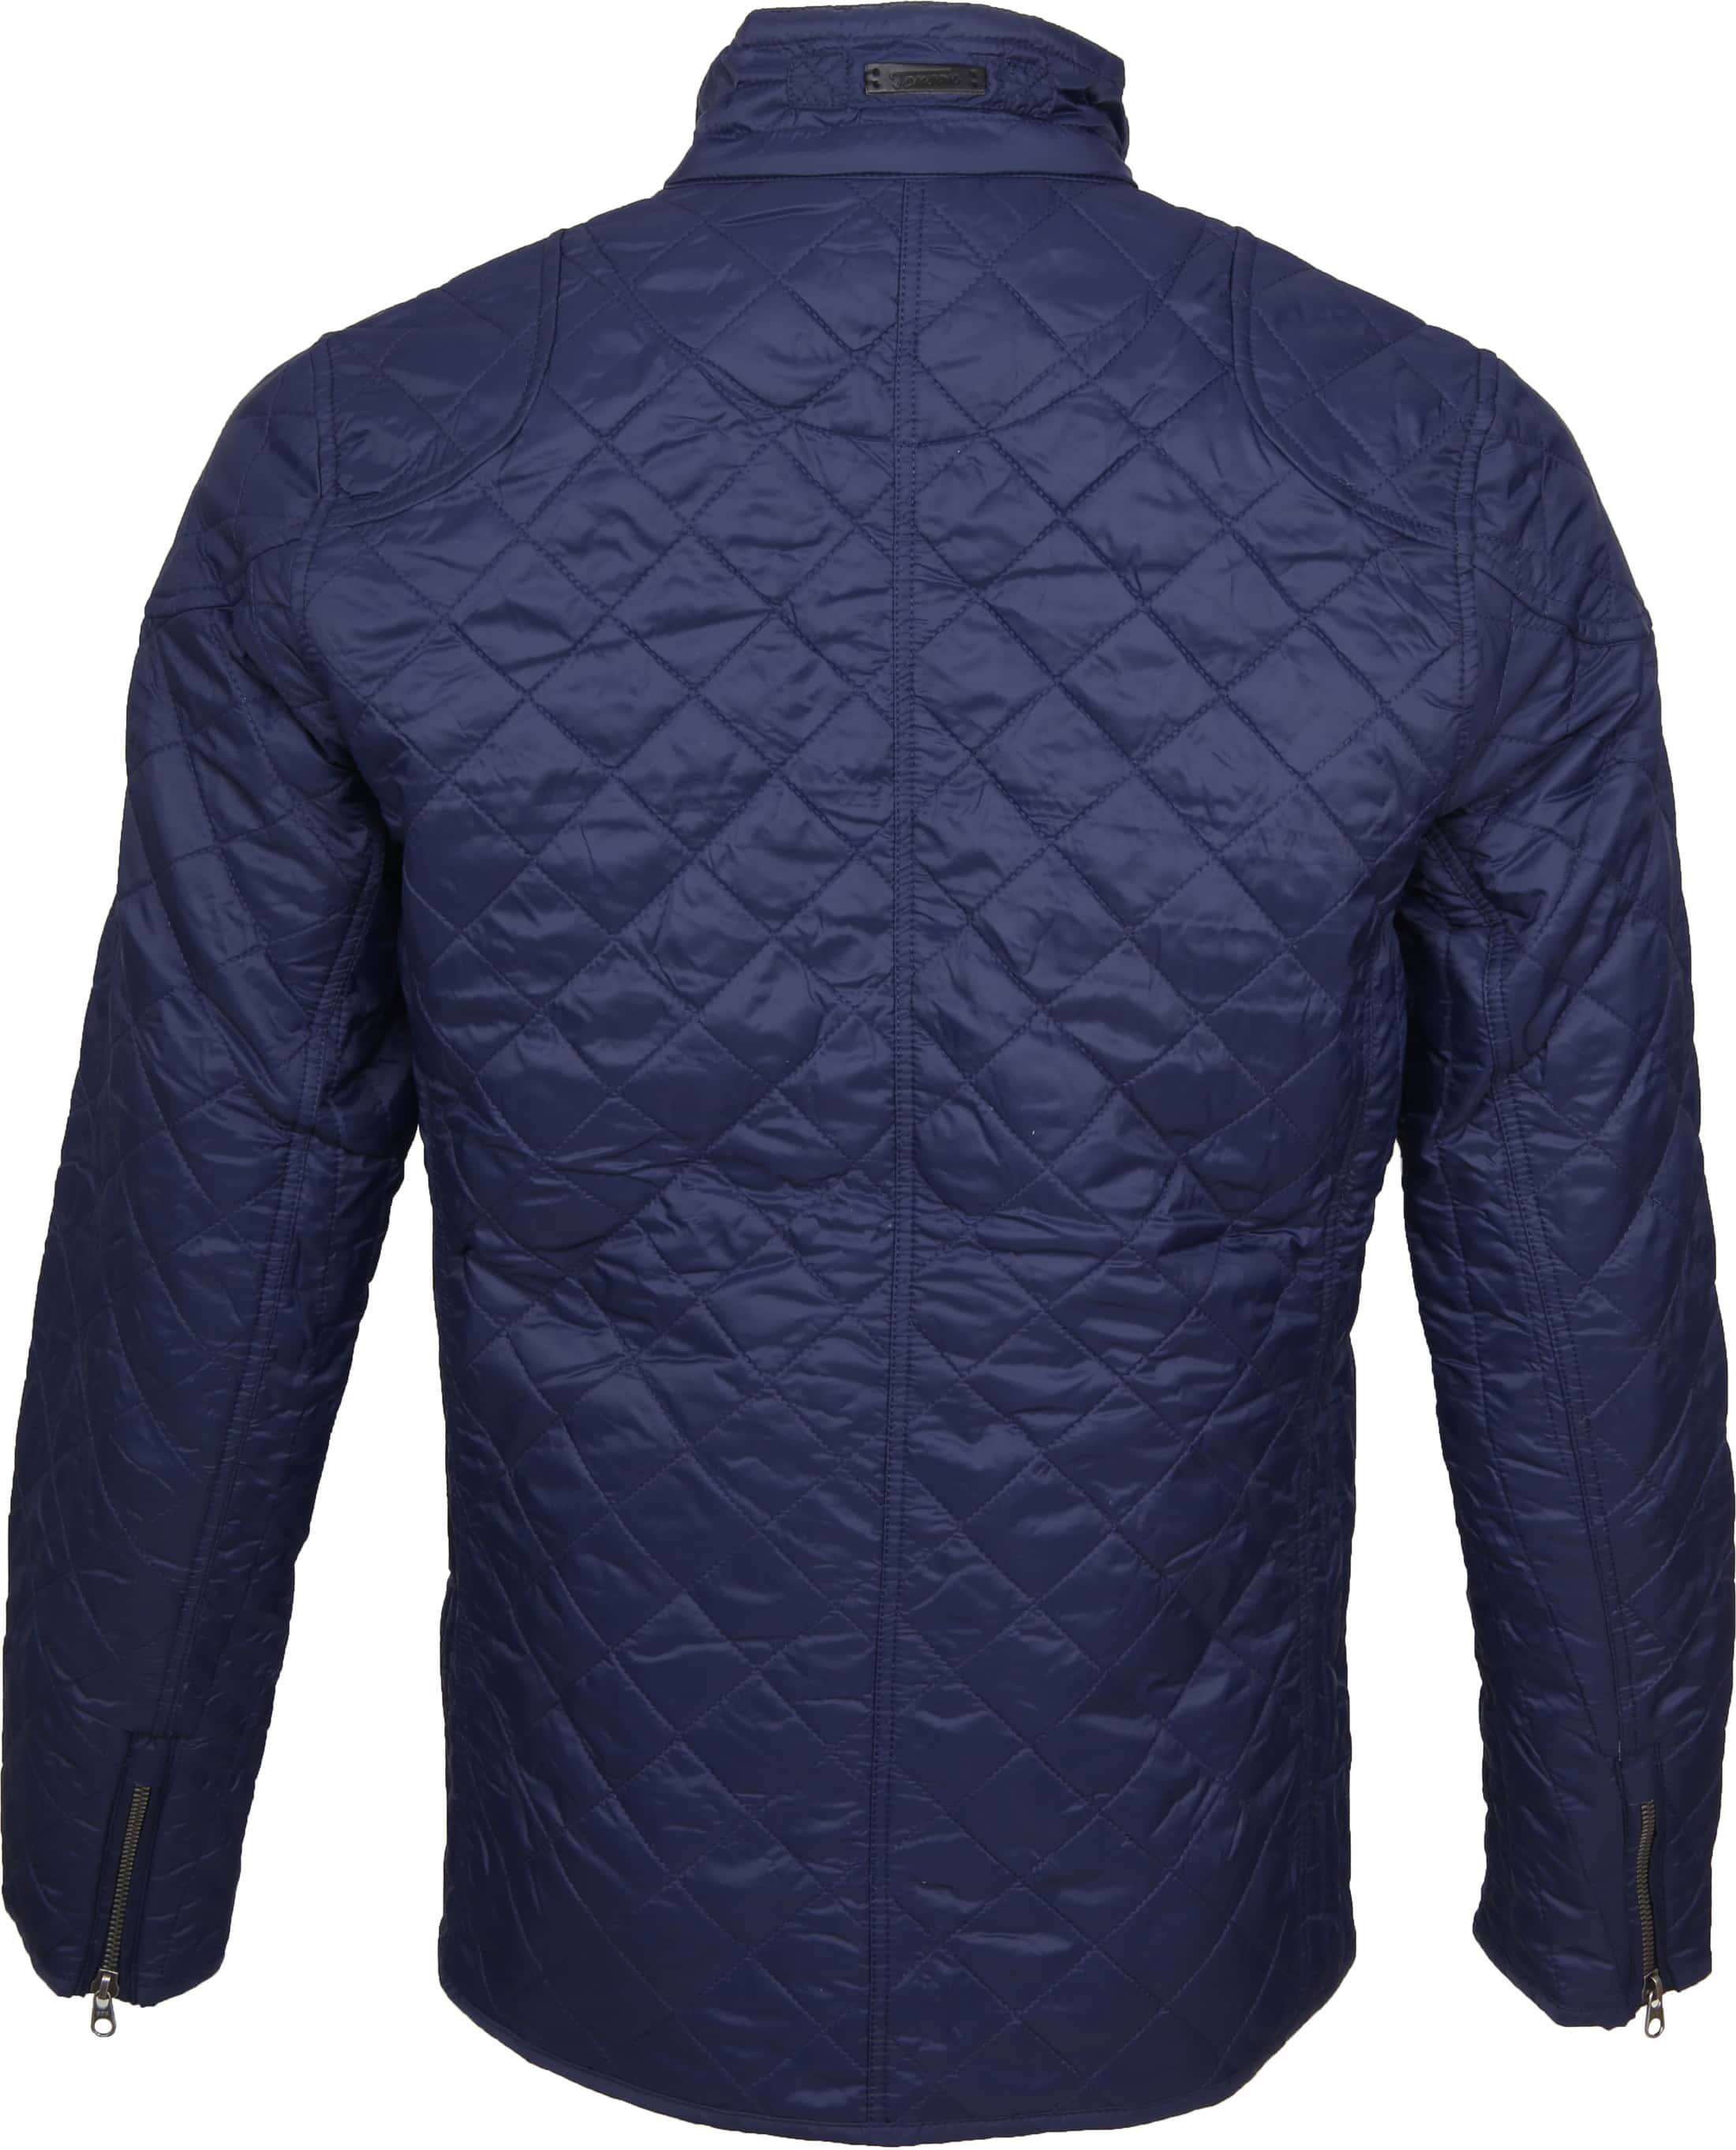 Tenson Samson Jacket Quilted Navy foto 5